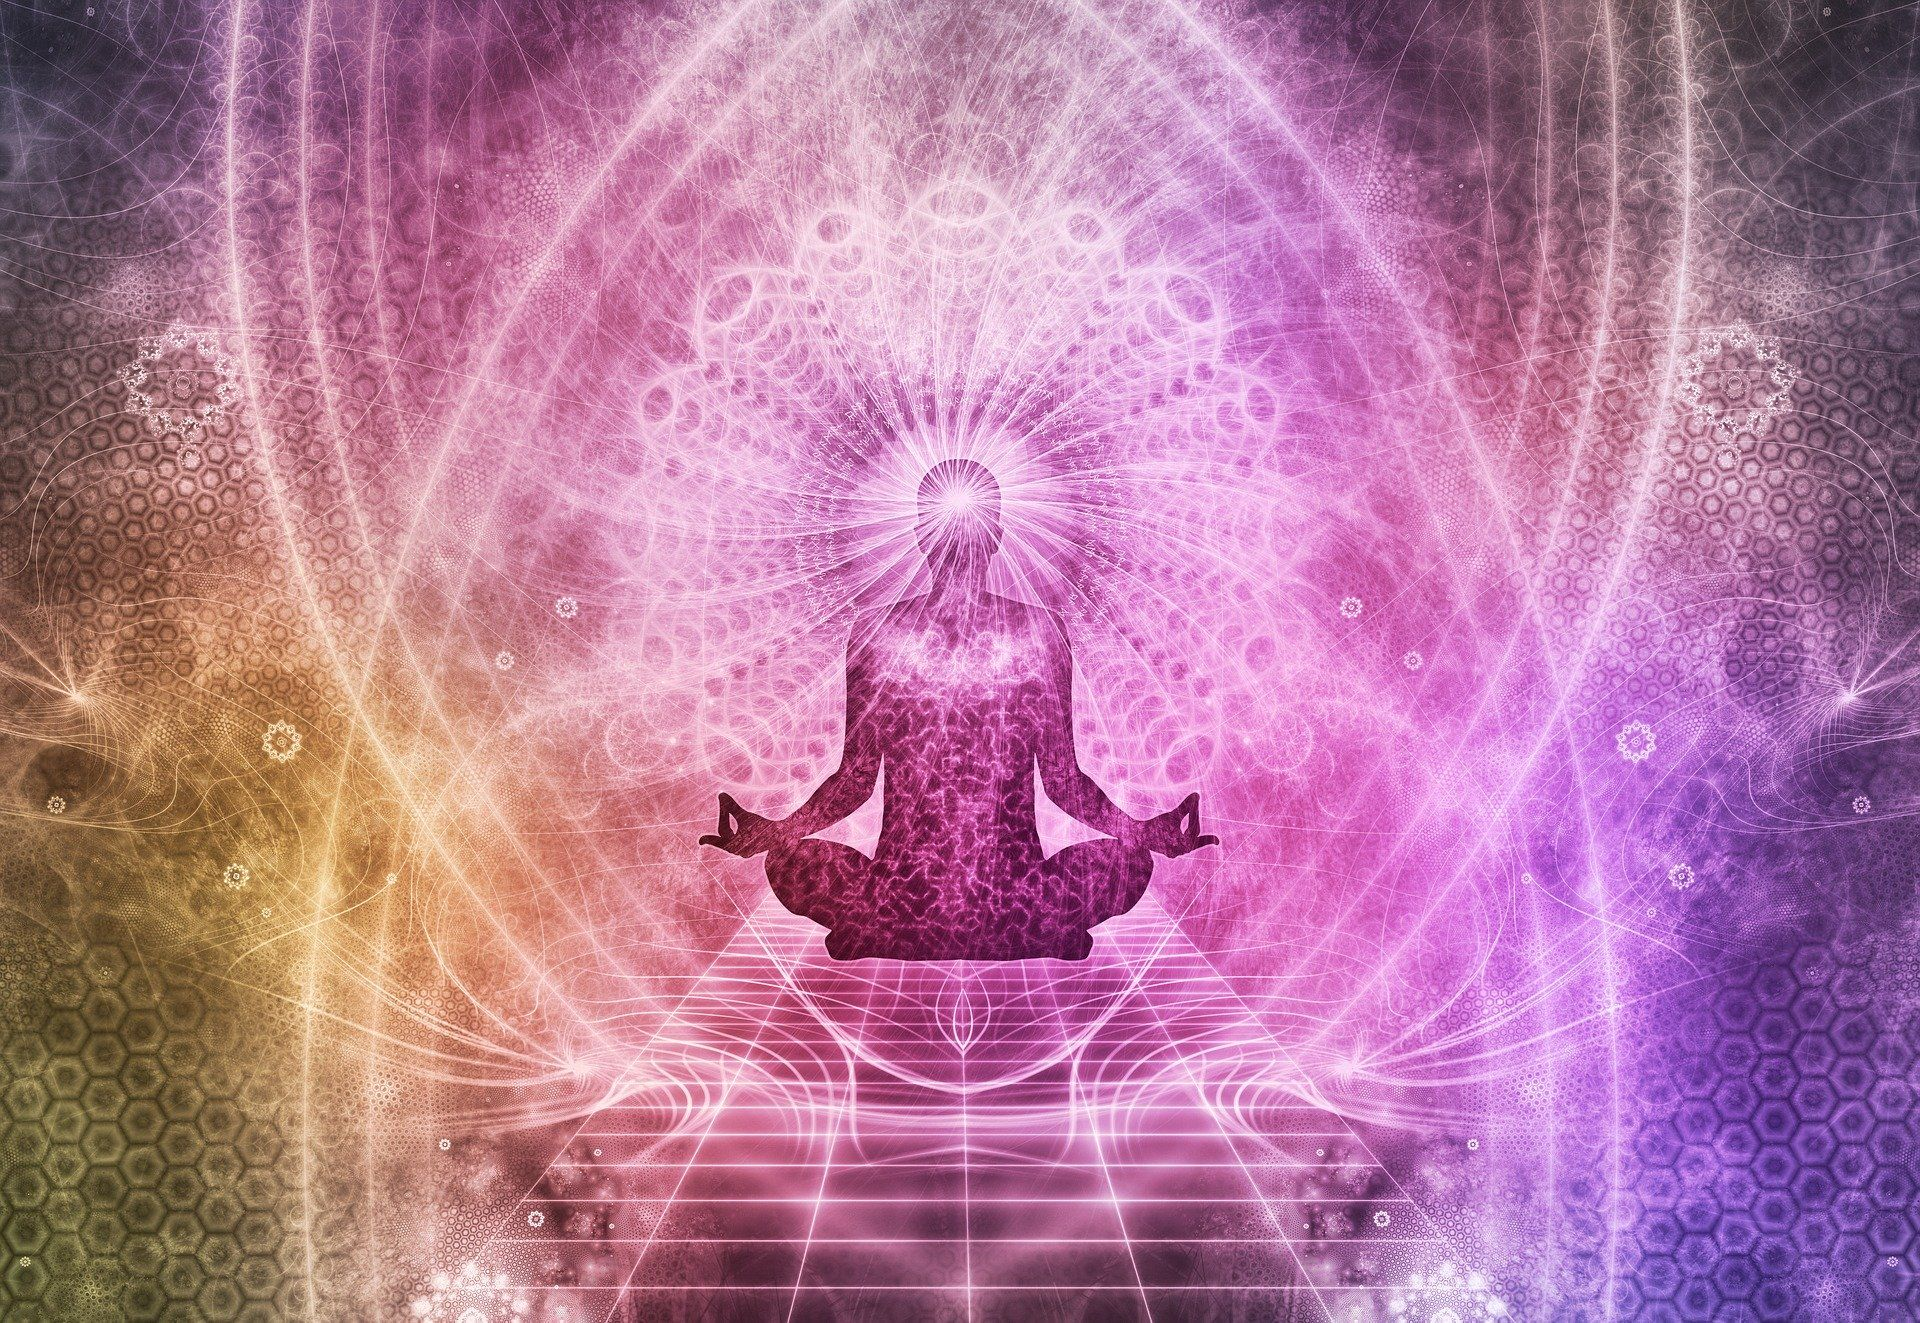 Colorful image of person meditating to improve concentration